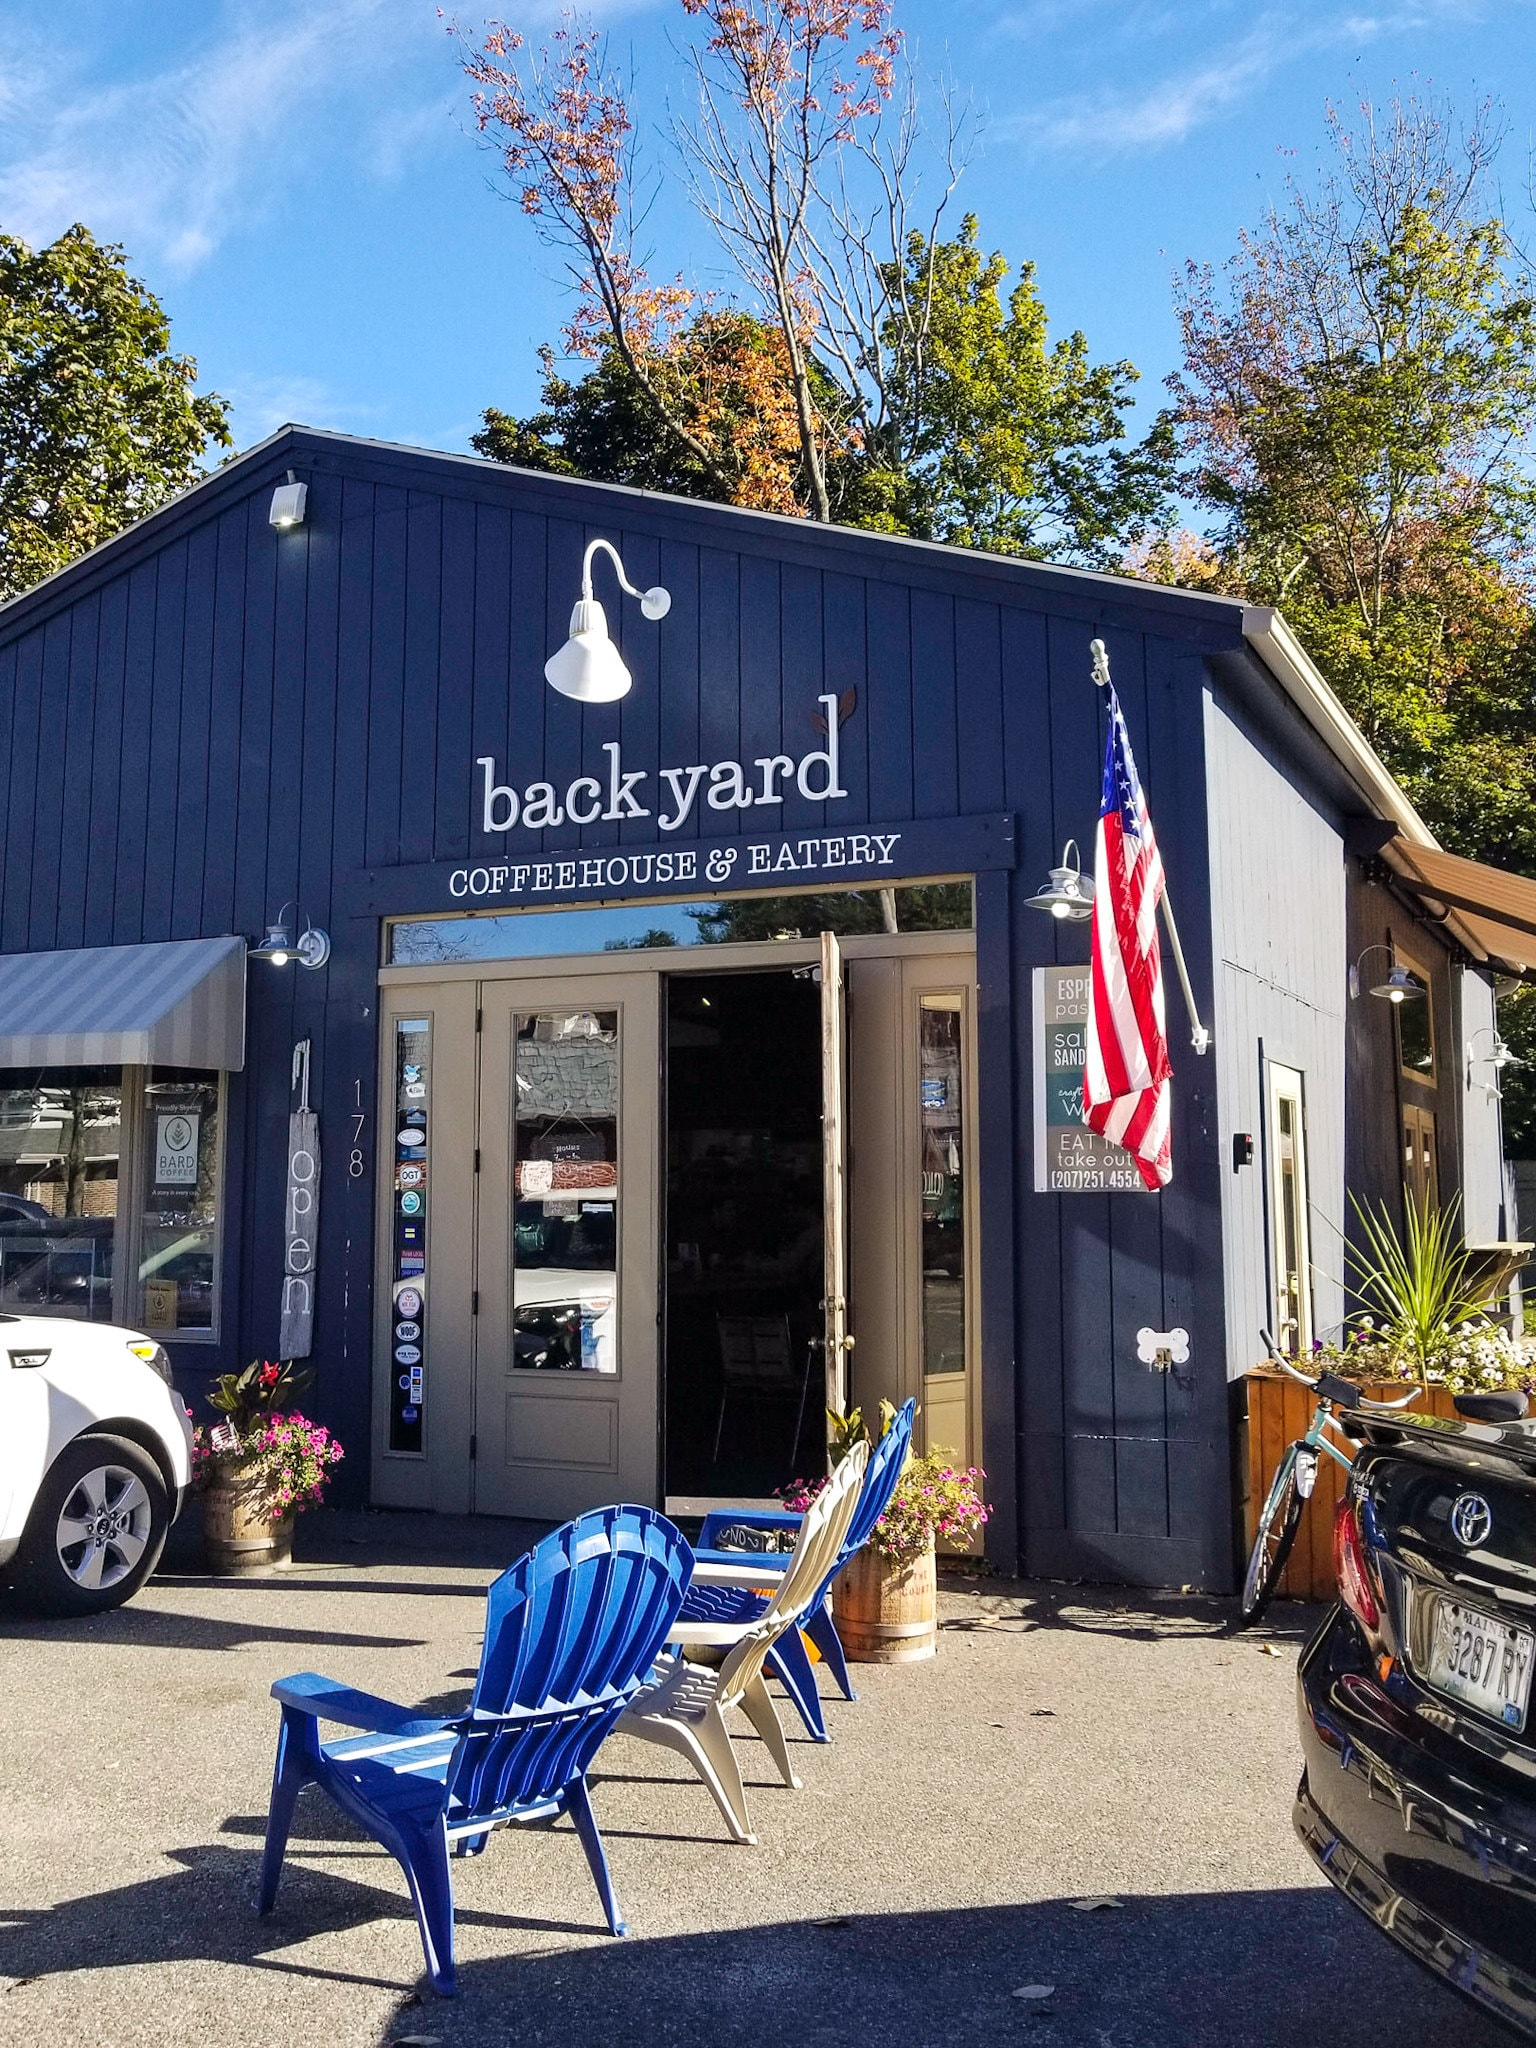 Backyard coffeehouse and eatery